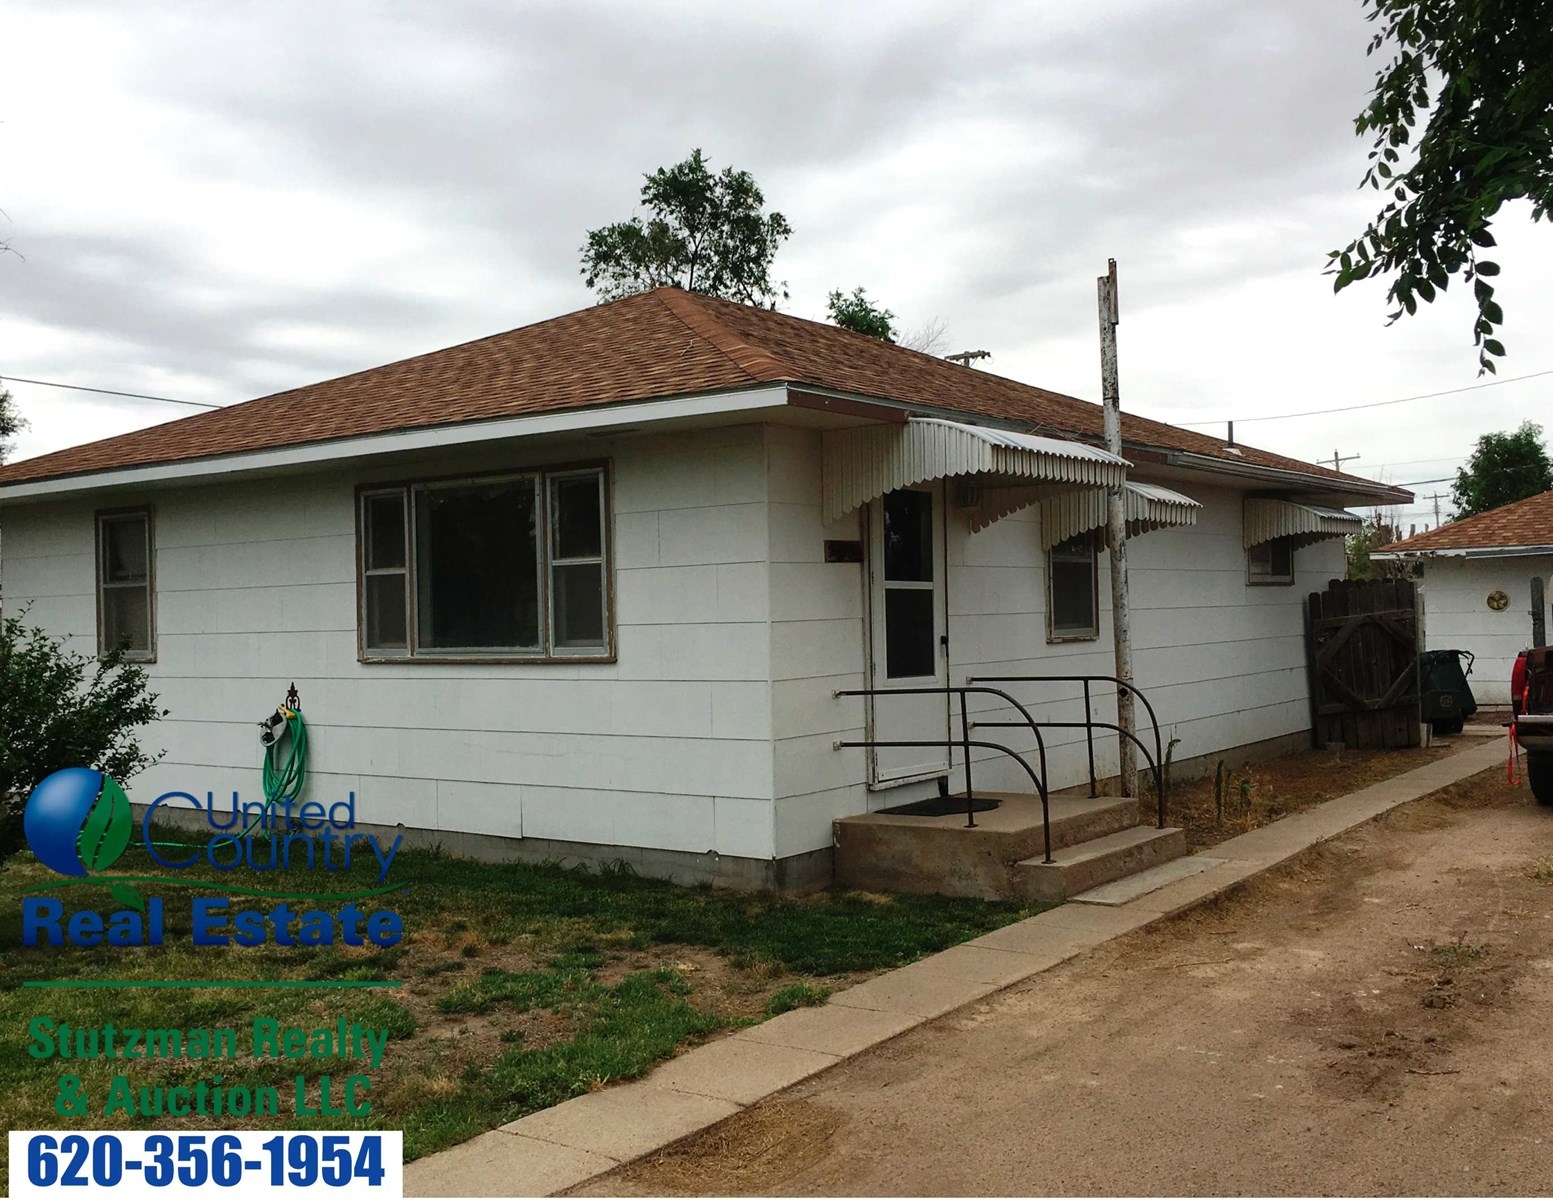 ATTRACTIVE, WELL MAINTAINED, IMMACULATE HOME FOR SALE